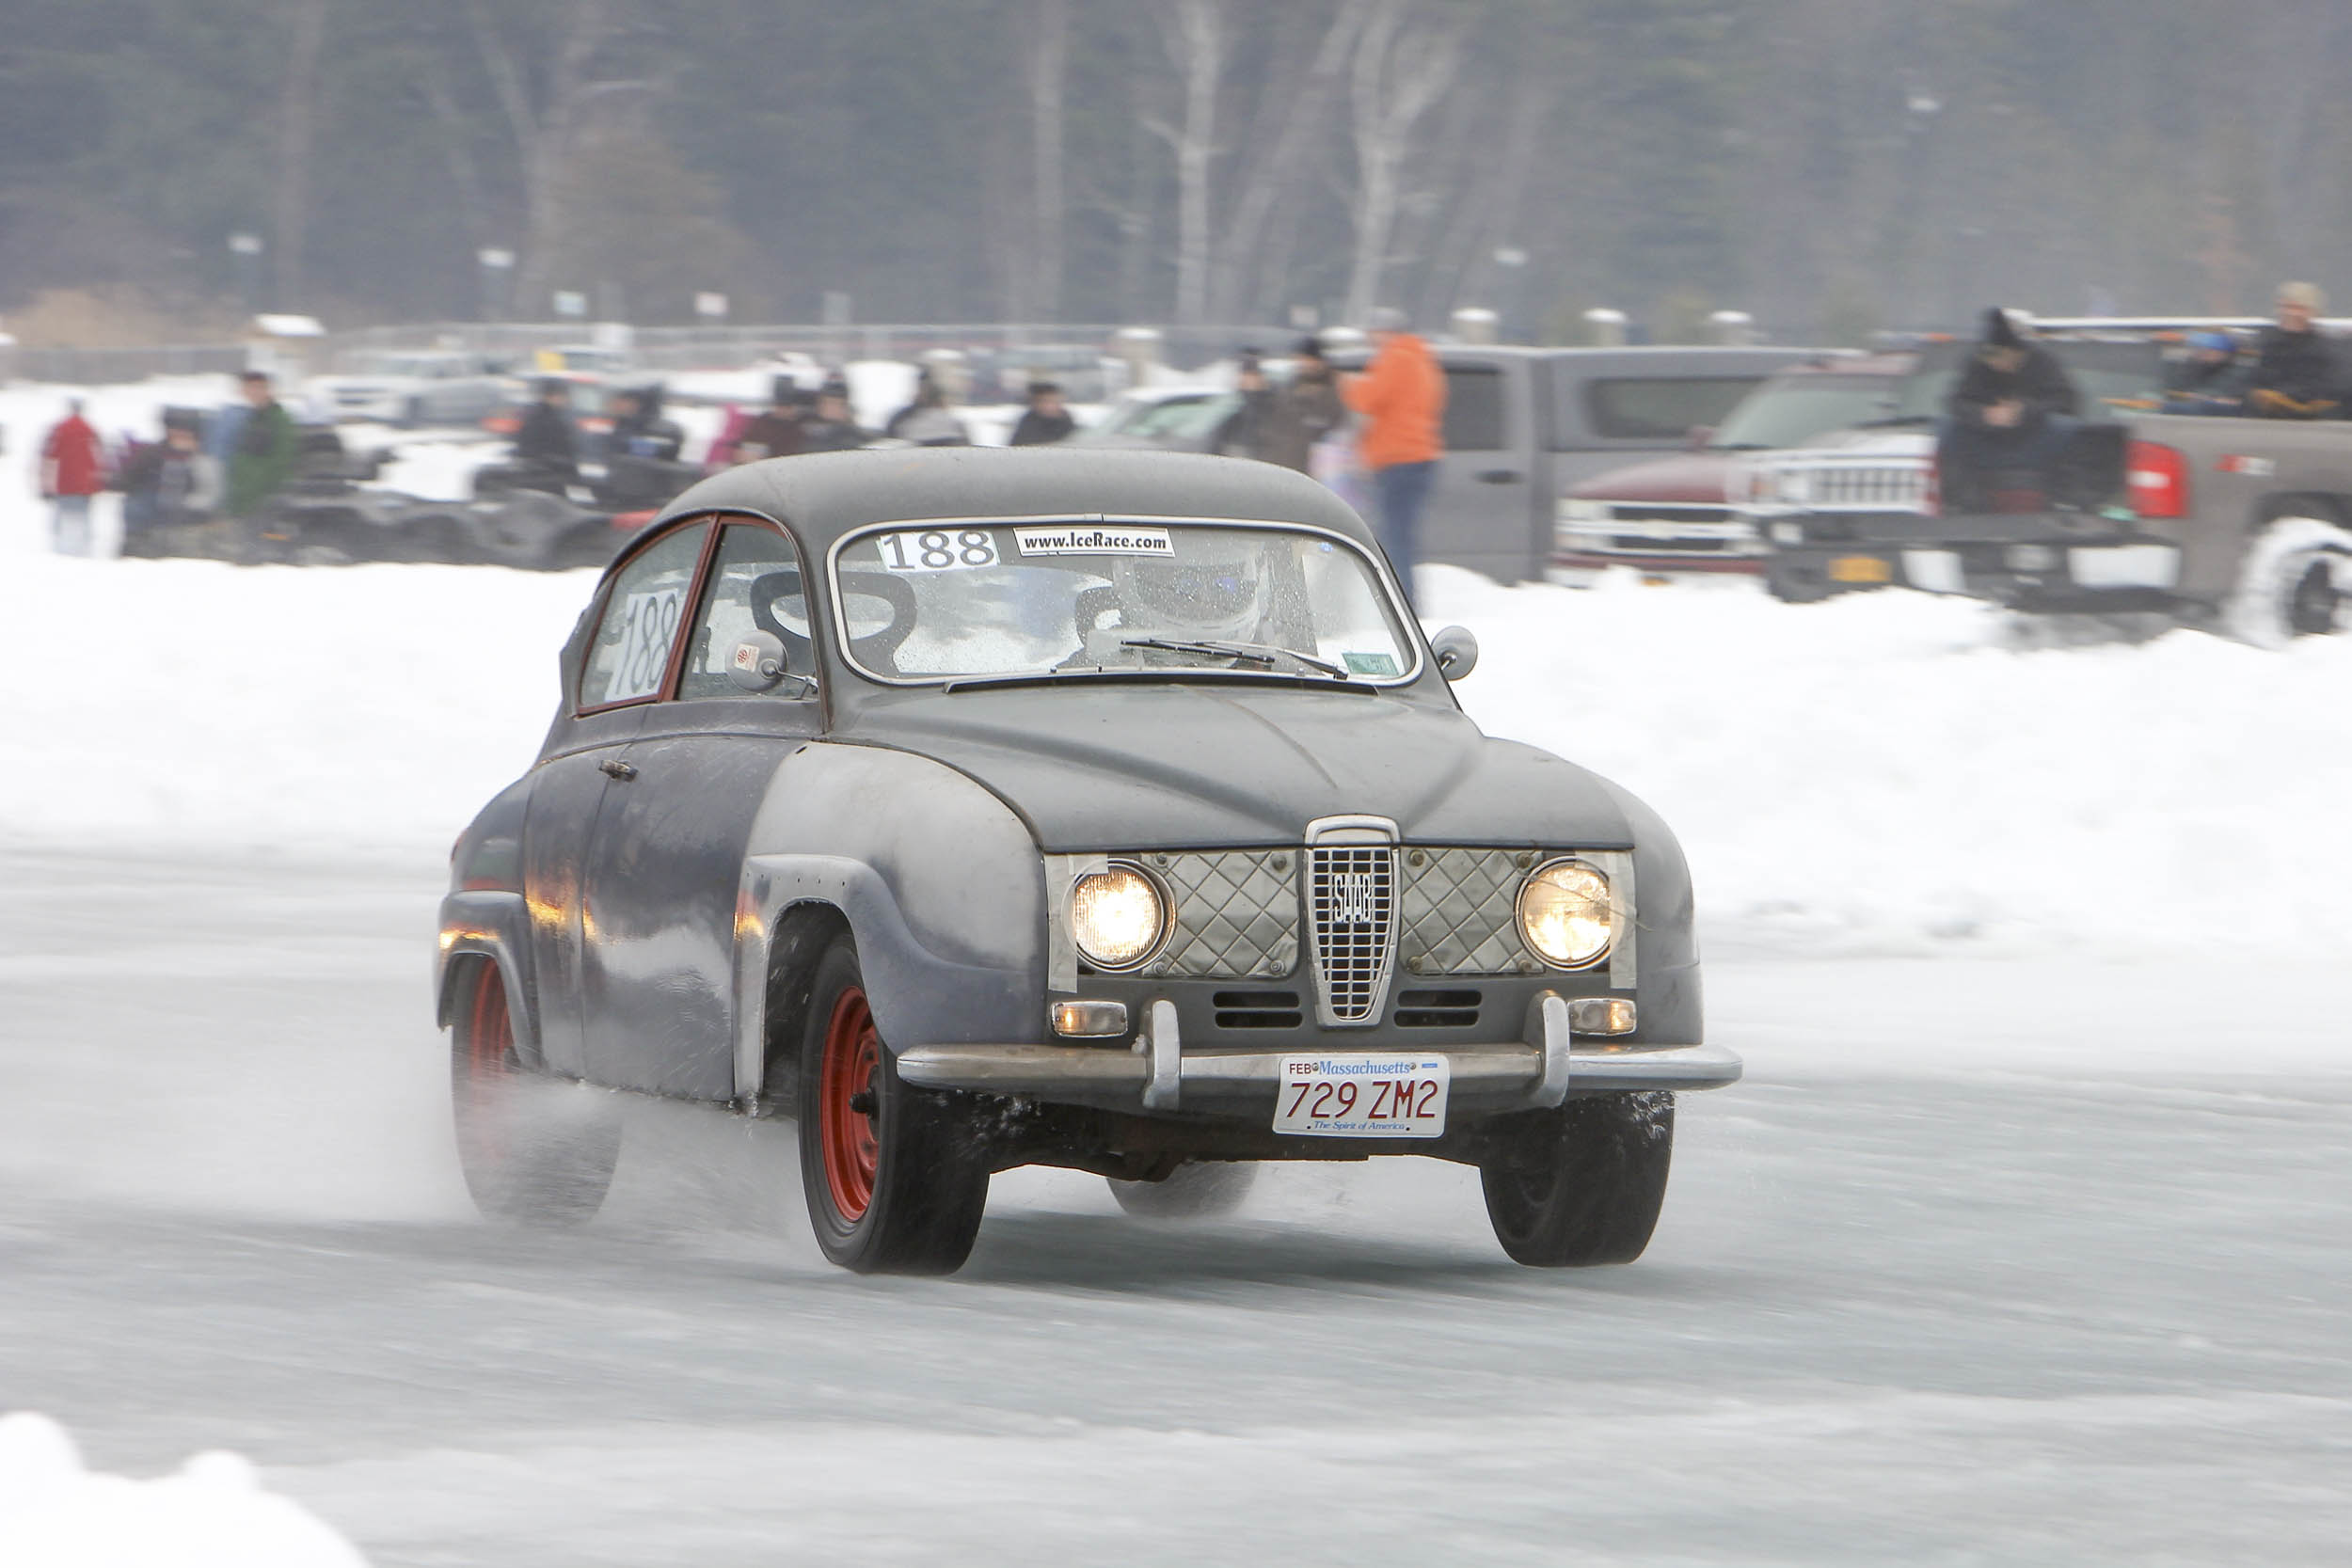 Saab ice racing